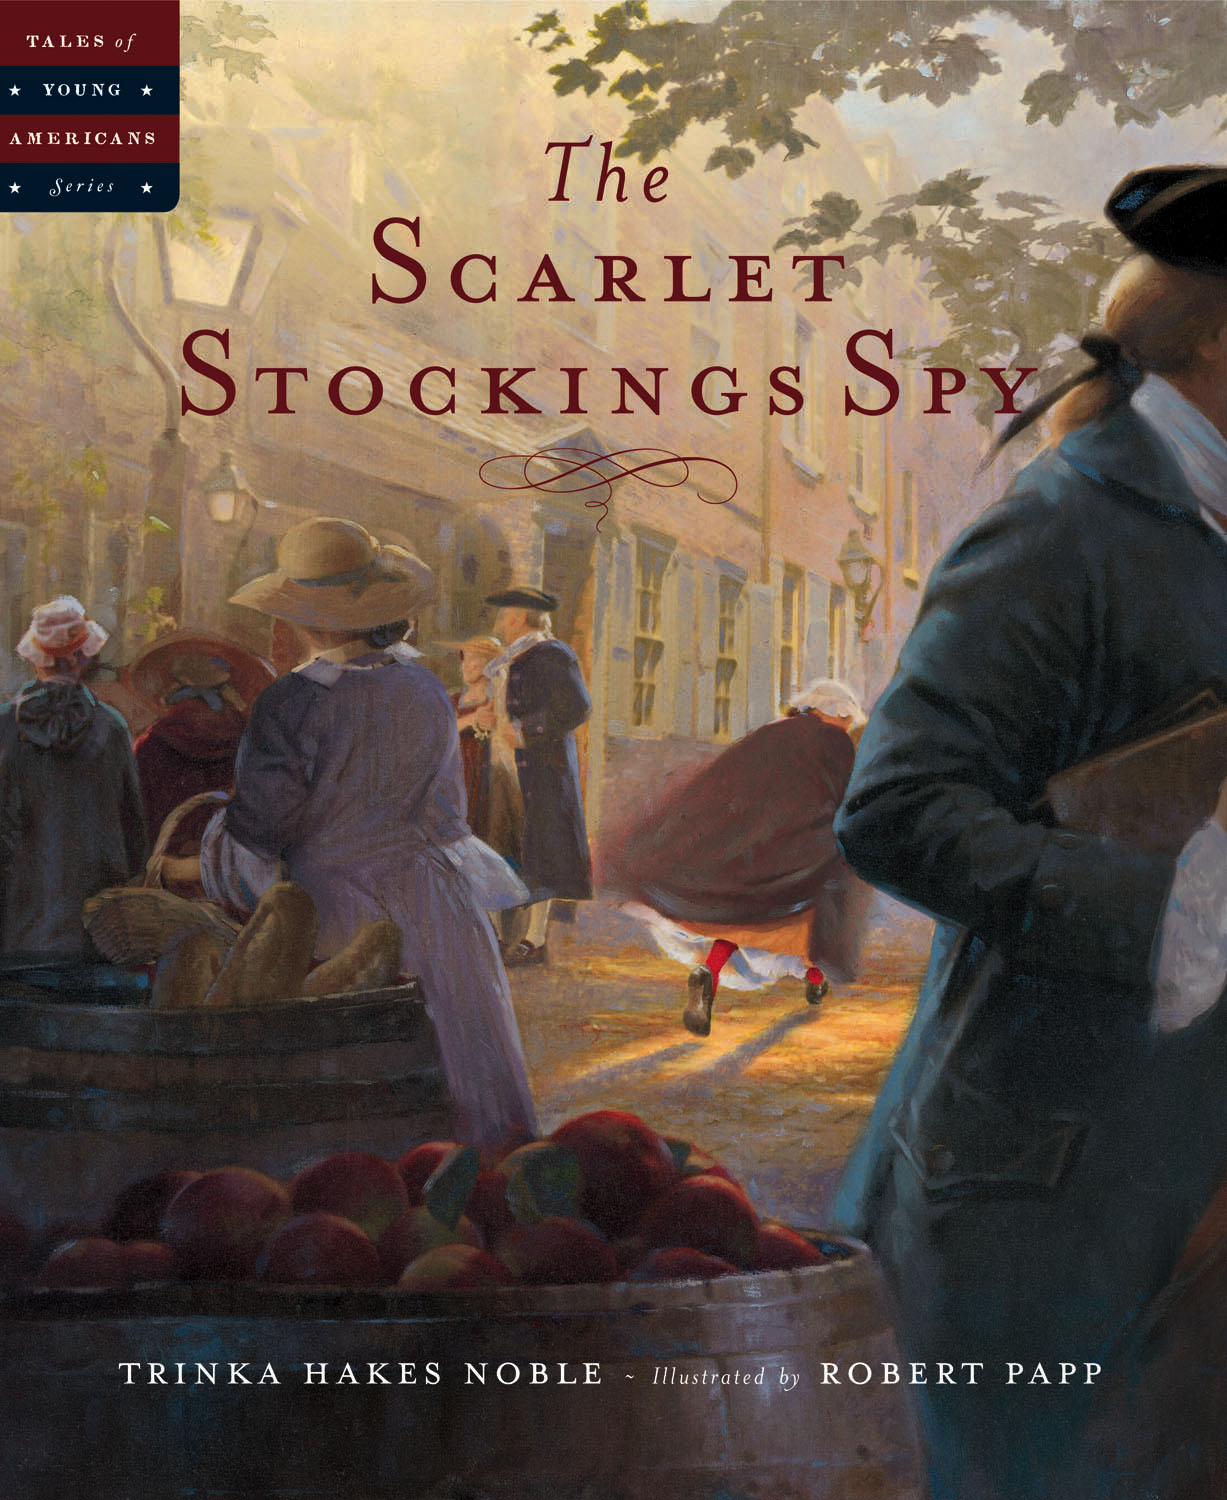 The Scarlet Stockings Spy